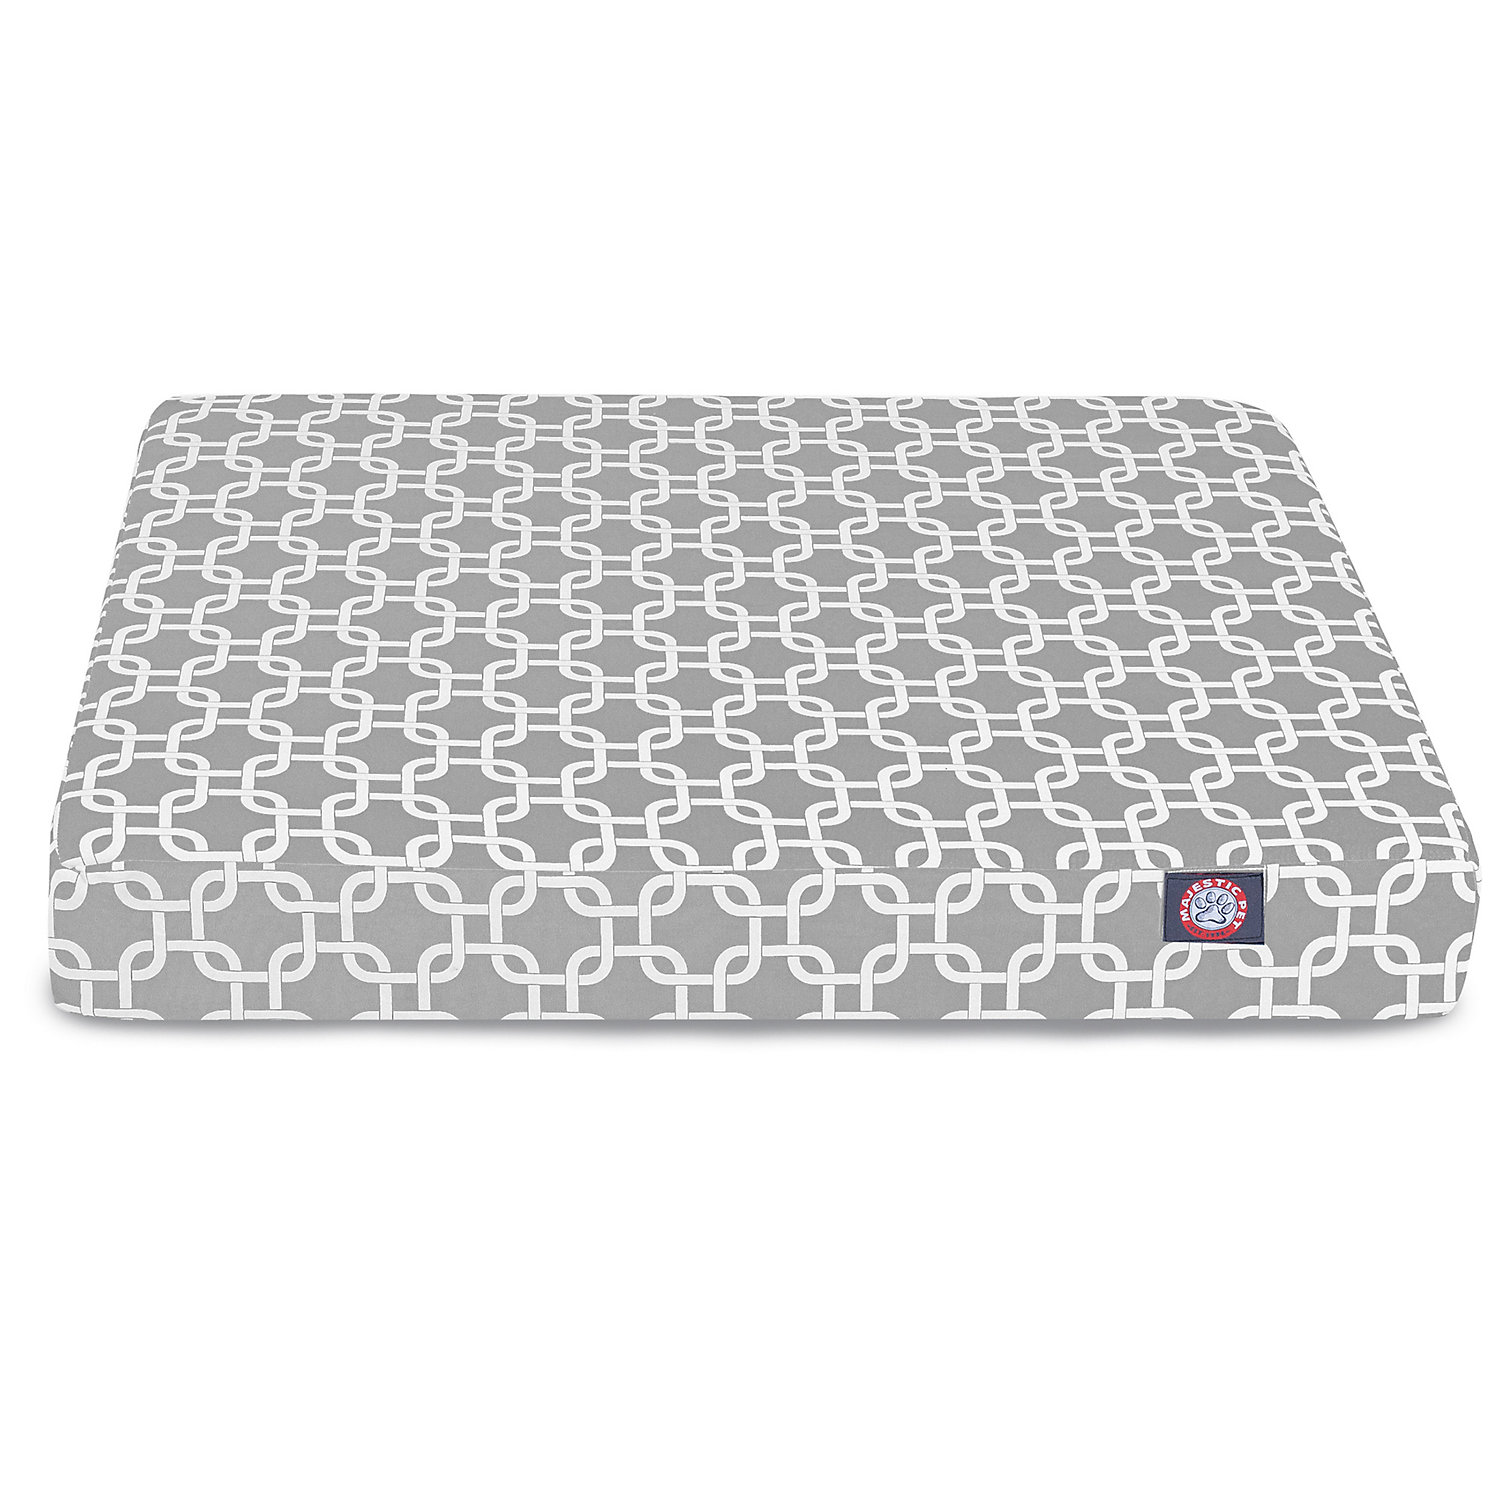 Majestic Pet Gray Links Orthopedic Memory Foam Rectangle Dog Bed, 44 L X 36 W, Large, Grey